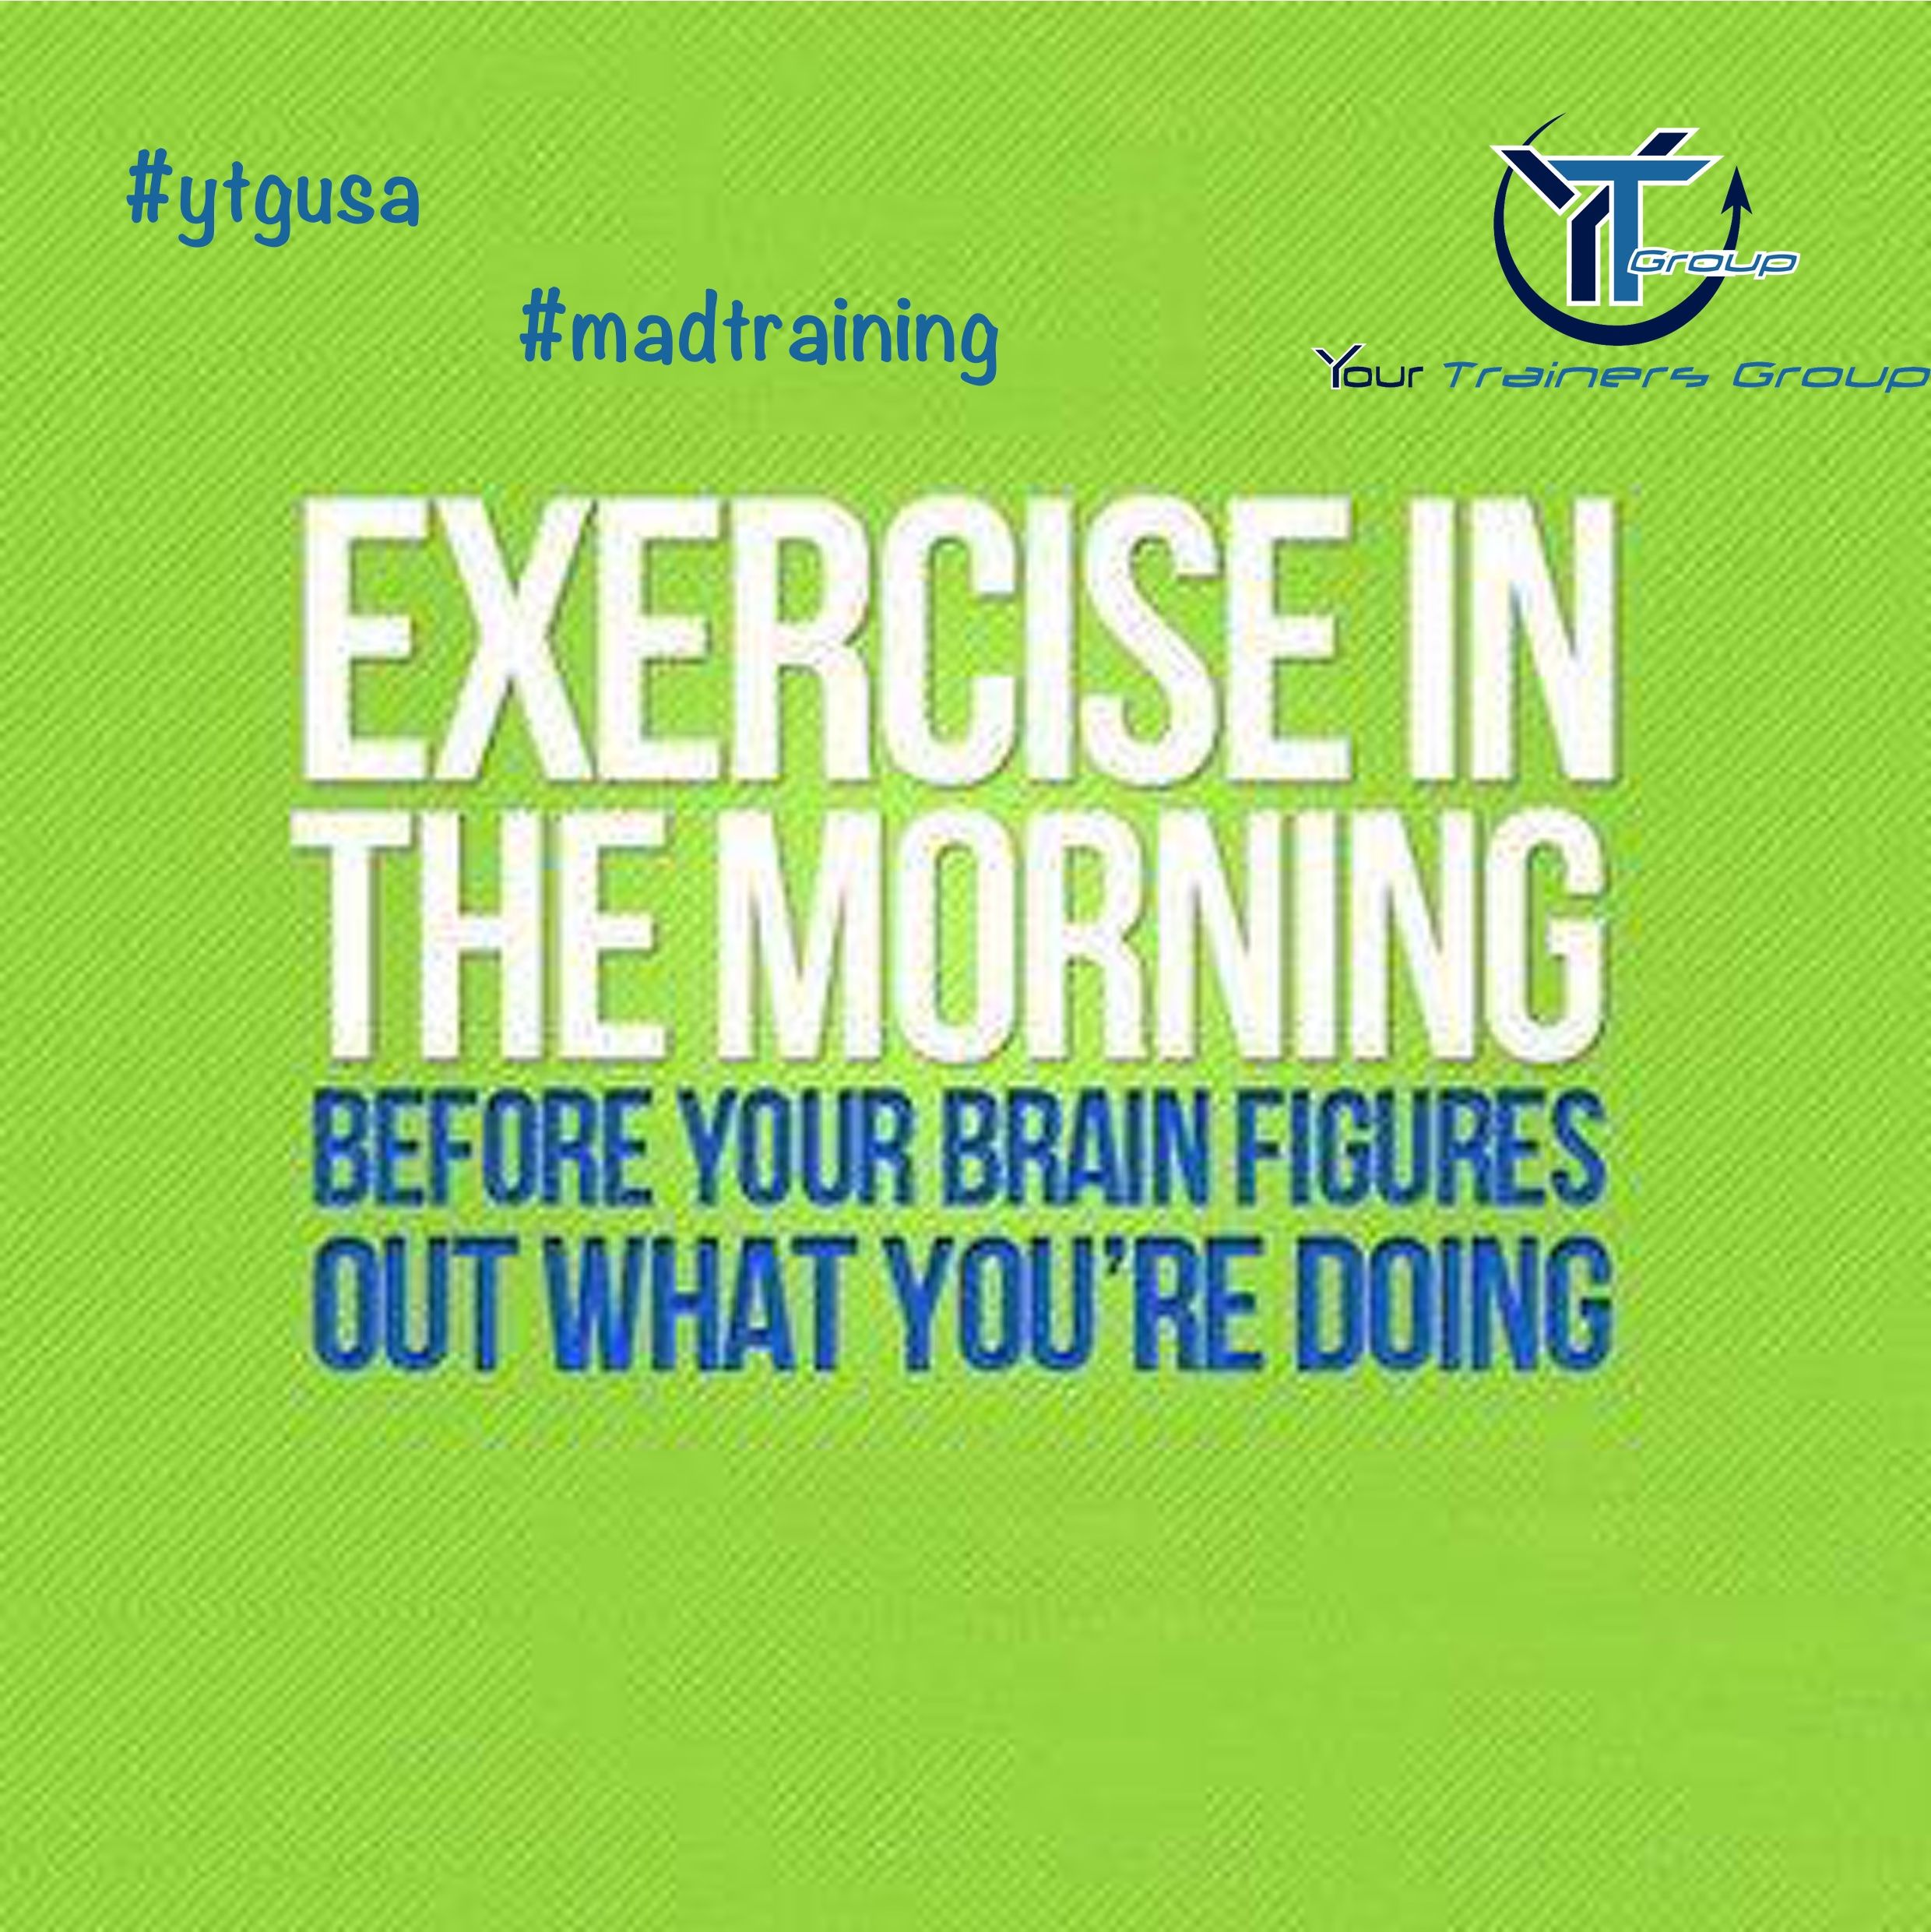 Quotes About Exercise Exercise In The Morning Before Your Brain Figures Out What You Are